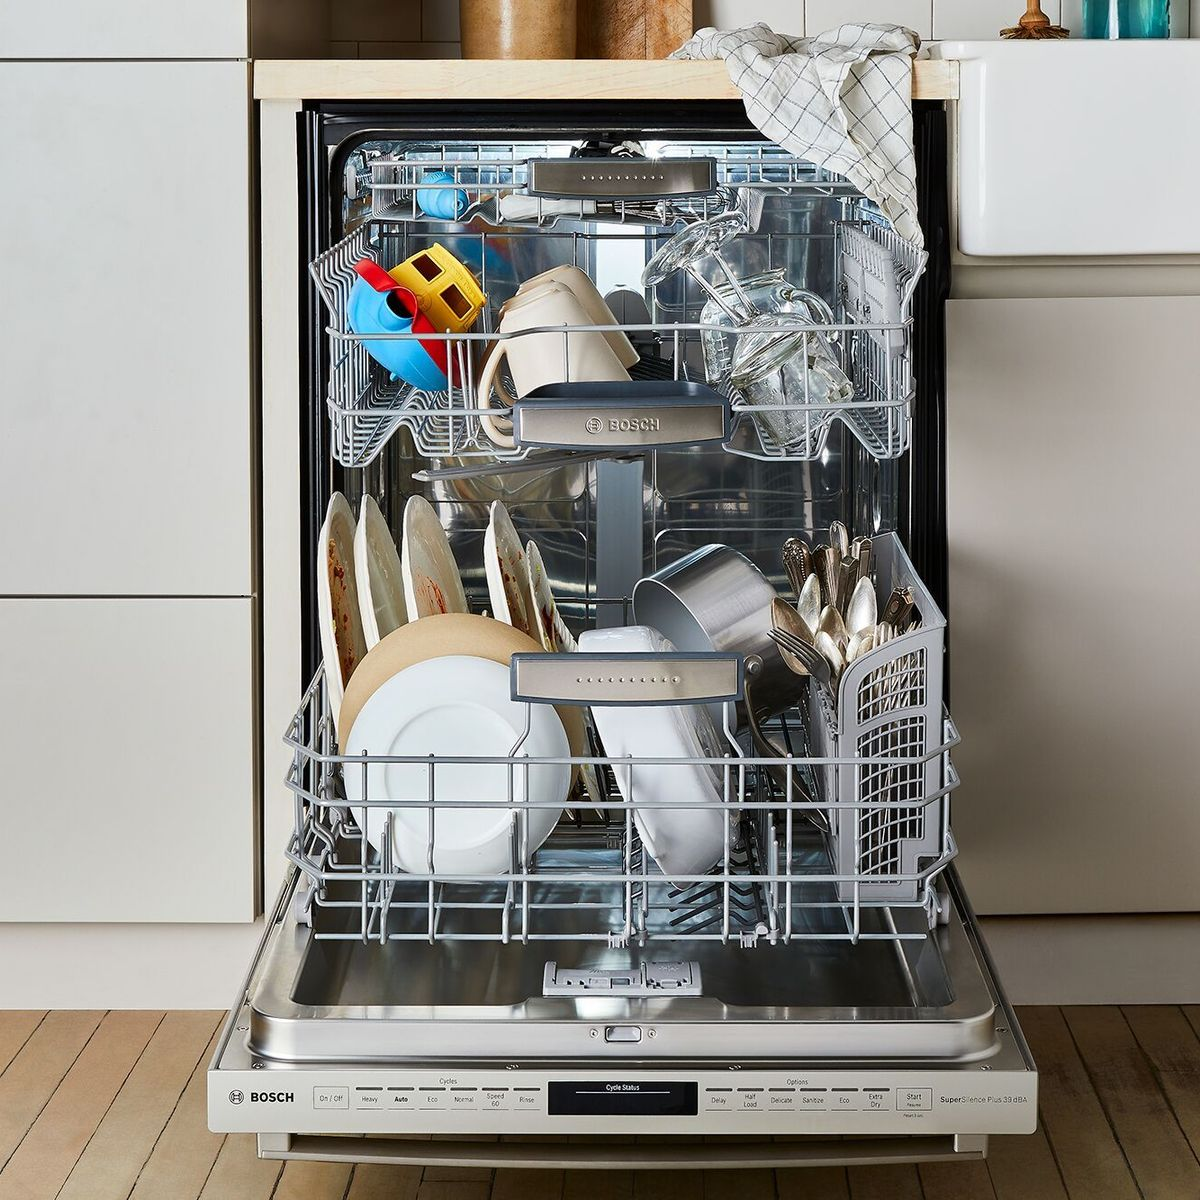 The Best Dishwasher Tips For Cleaner Dishes Plus Easy Hacks